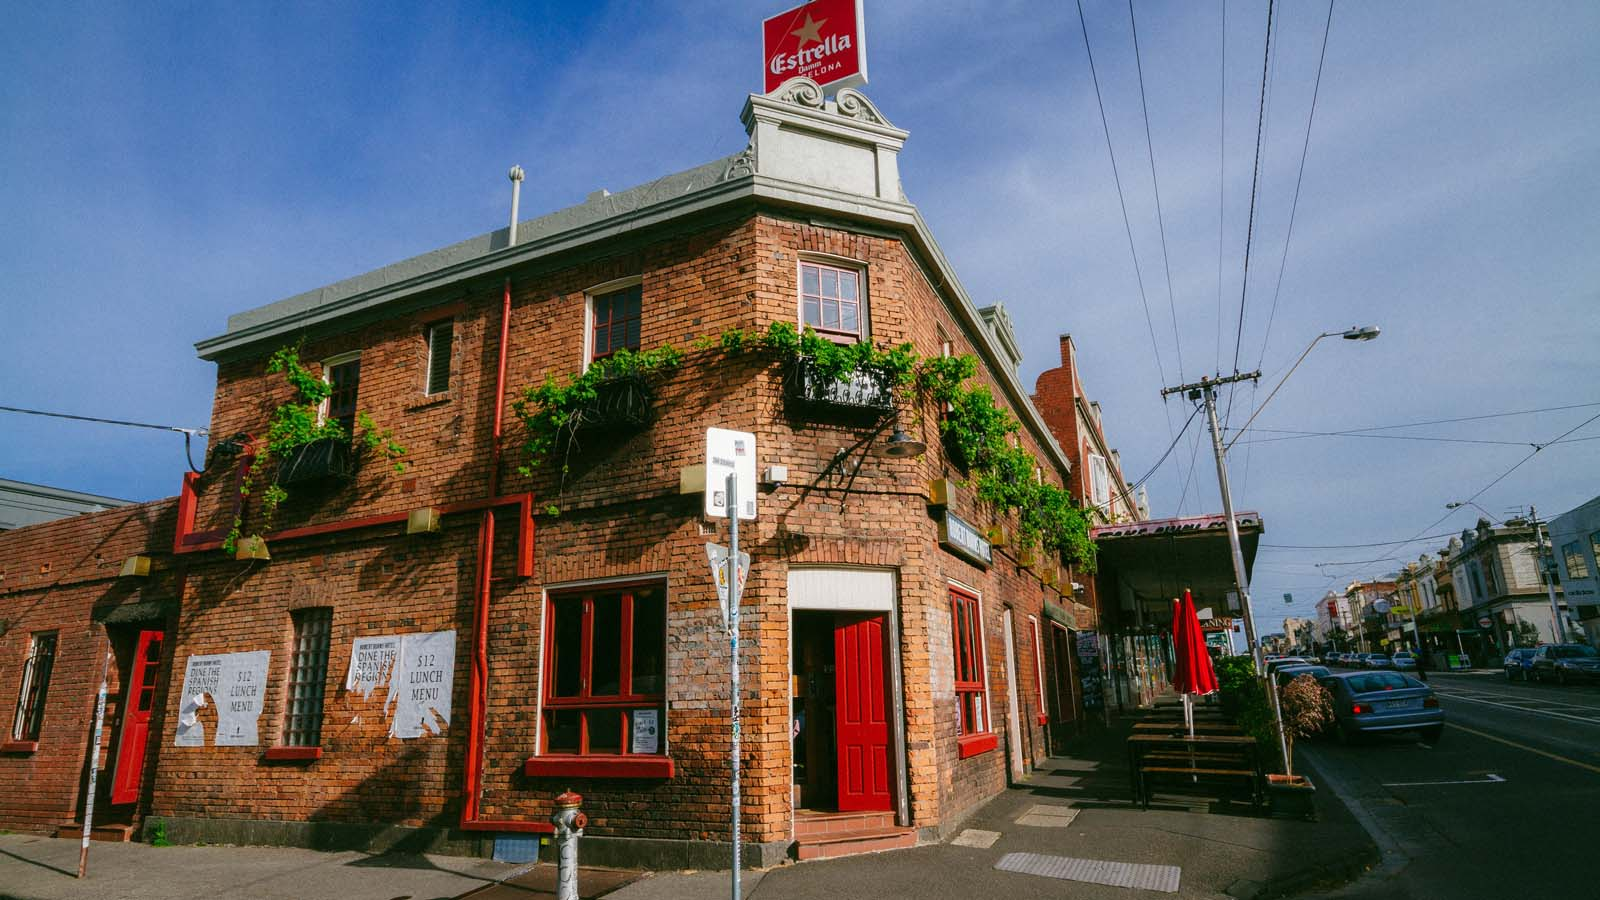 Robert Burns Hotel, Collingwood, Melbourne, Victoria, Australia. Photo: Robert Seba